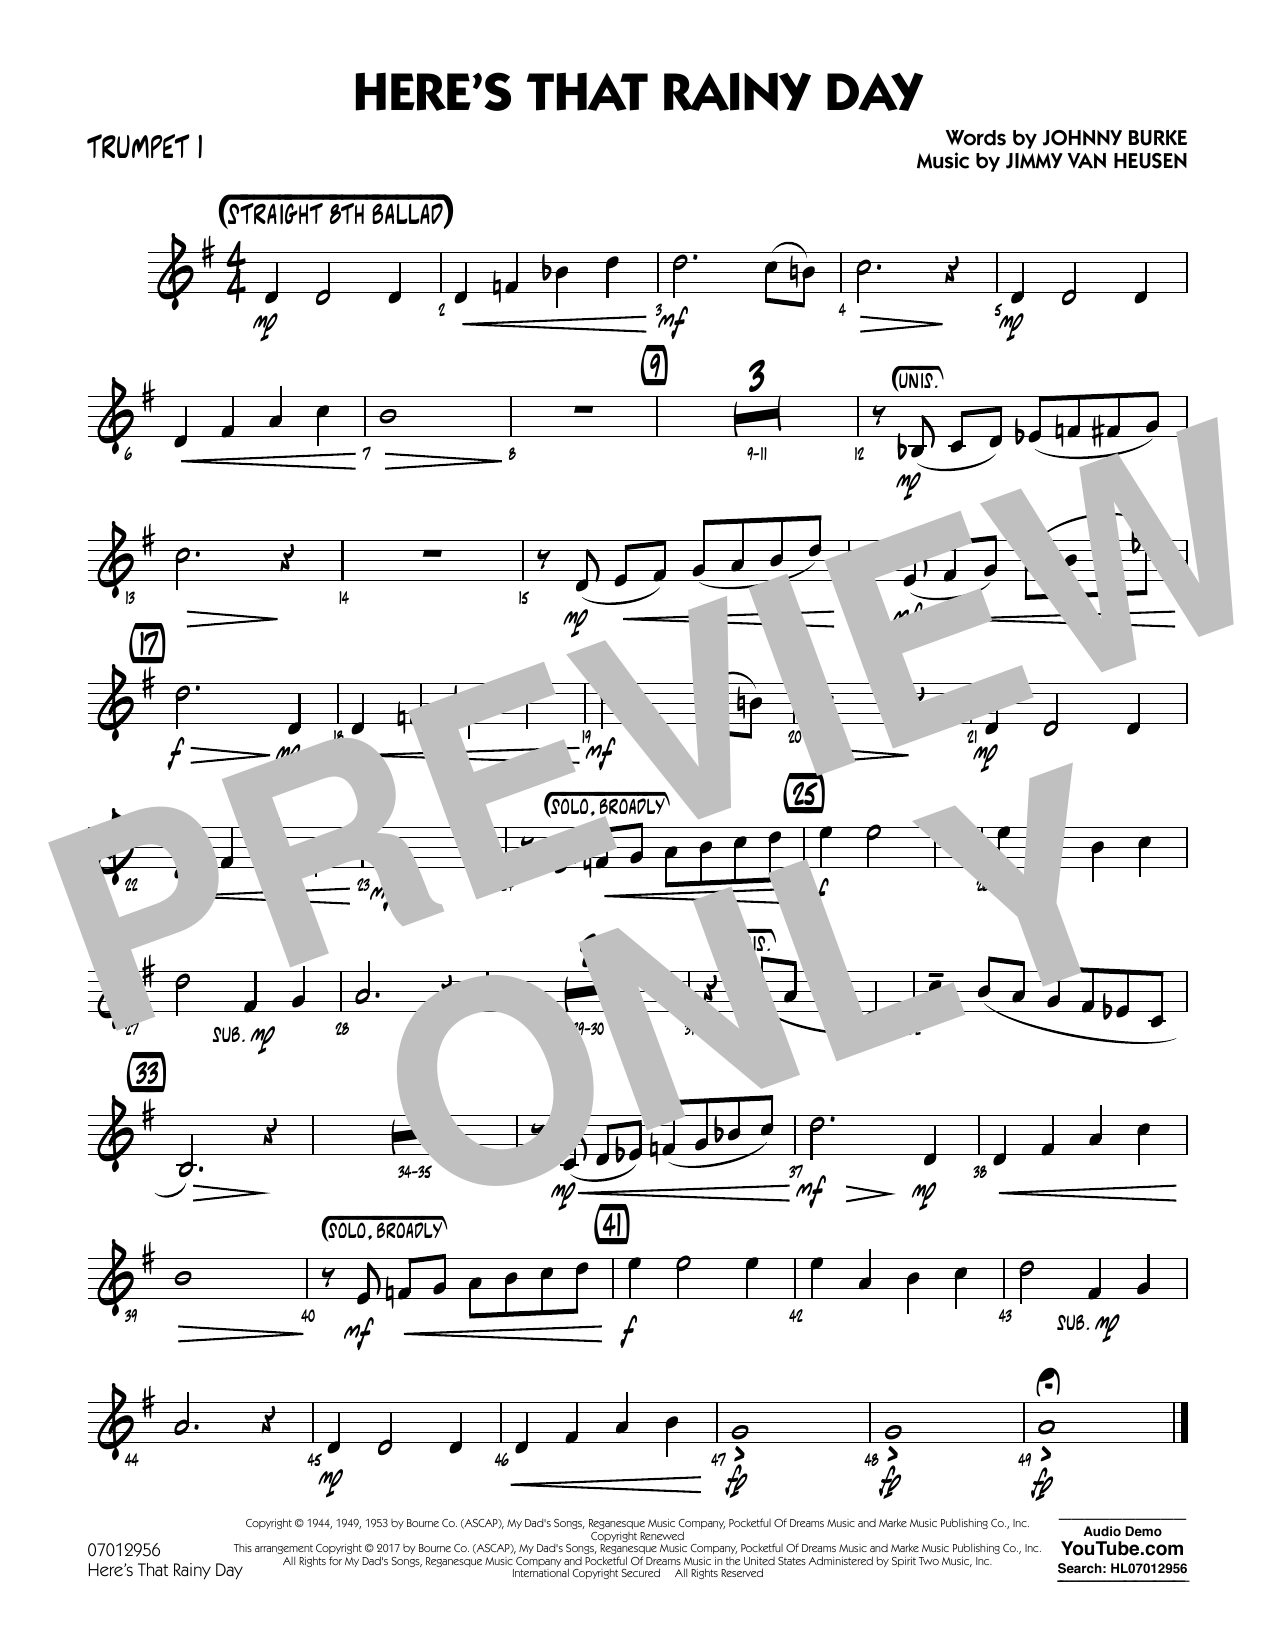 Here's That Rainy Day - Trumpet 1 Sheet Music